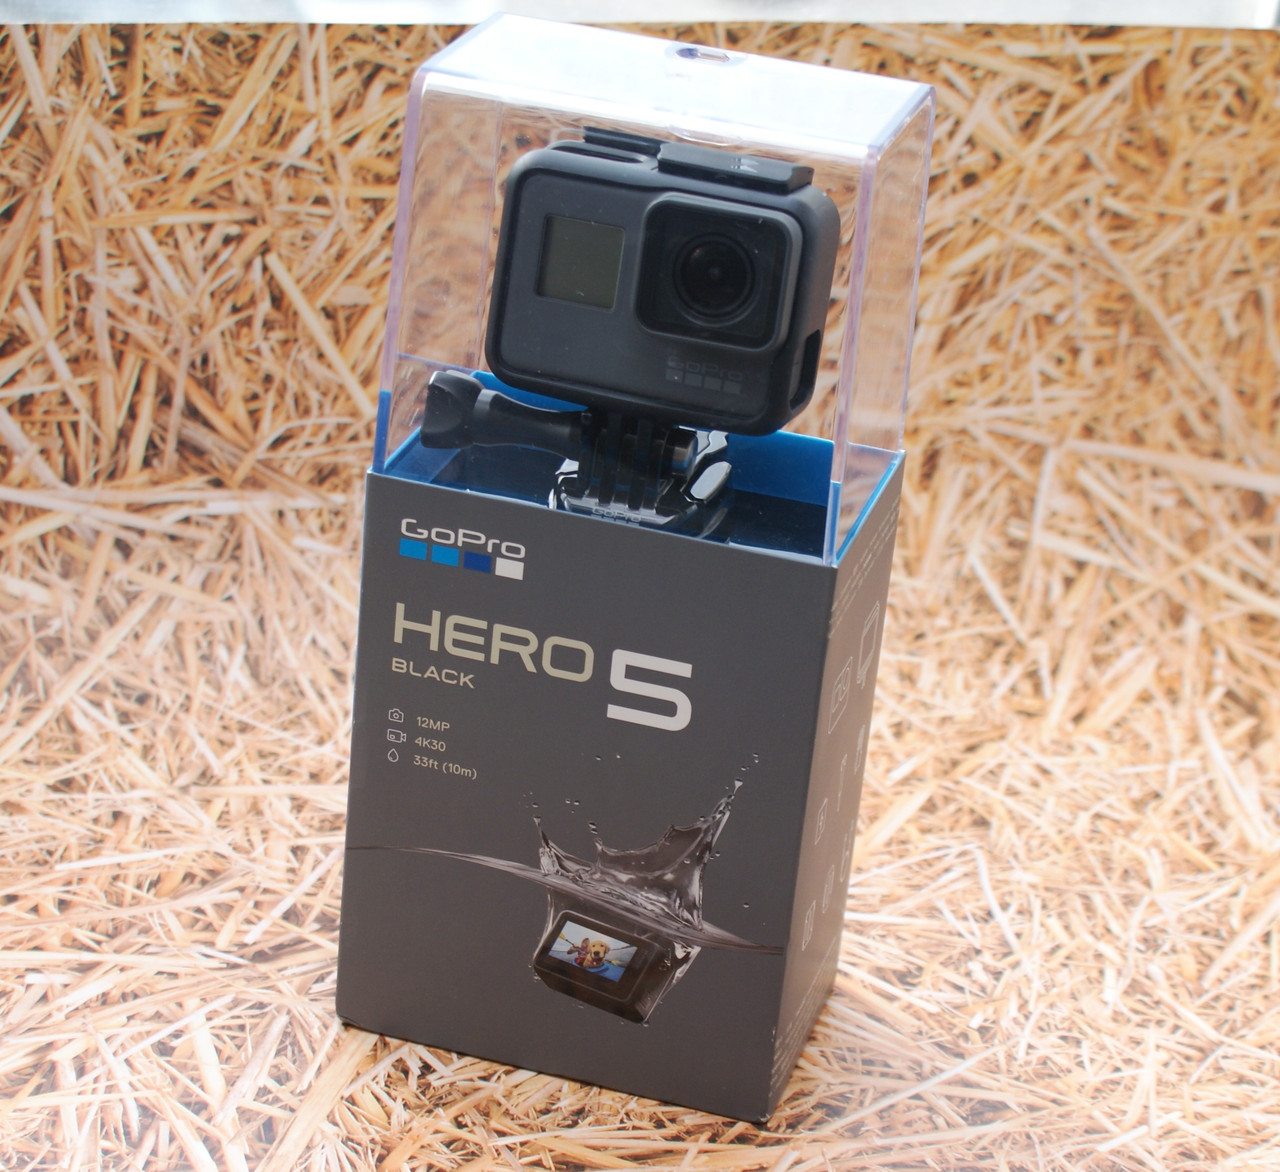 GOPRO HERO 5 BLACK (CHDHX-502)